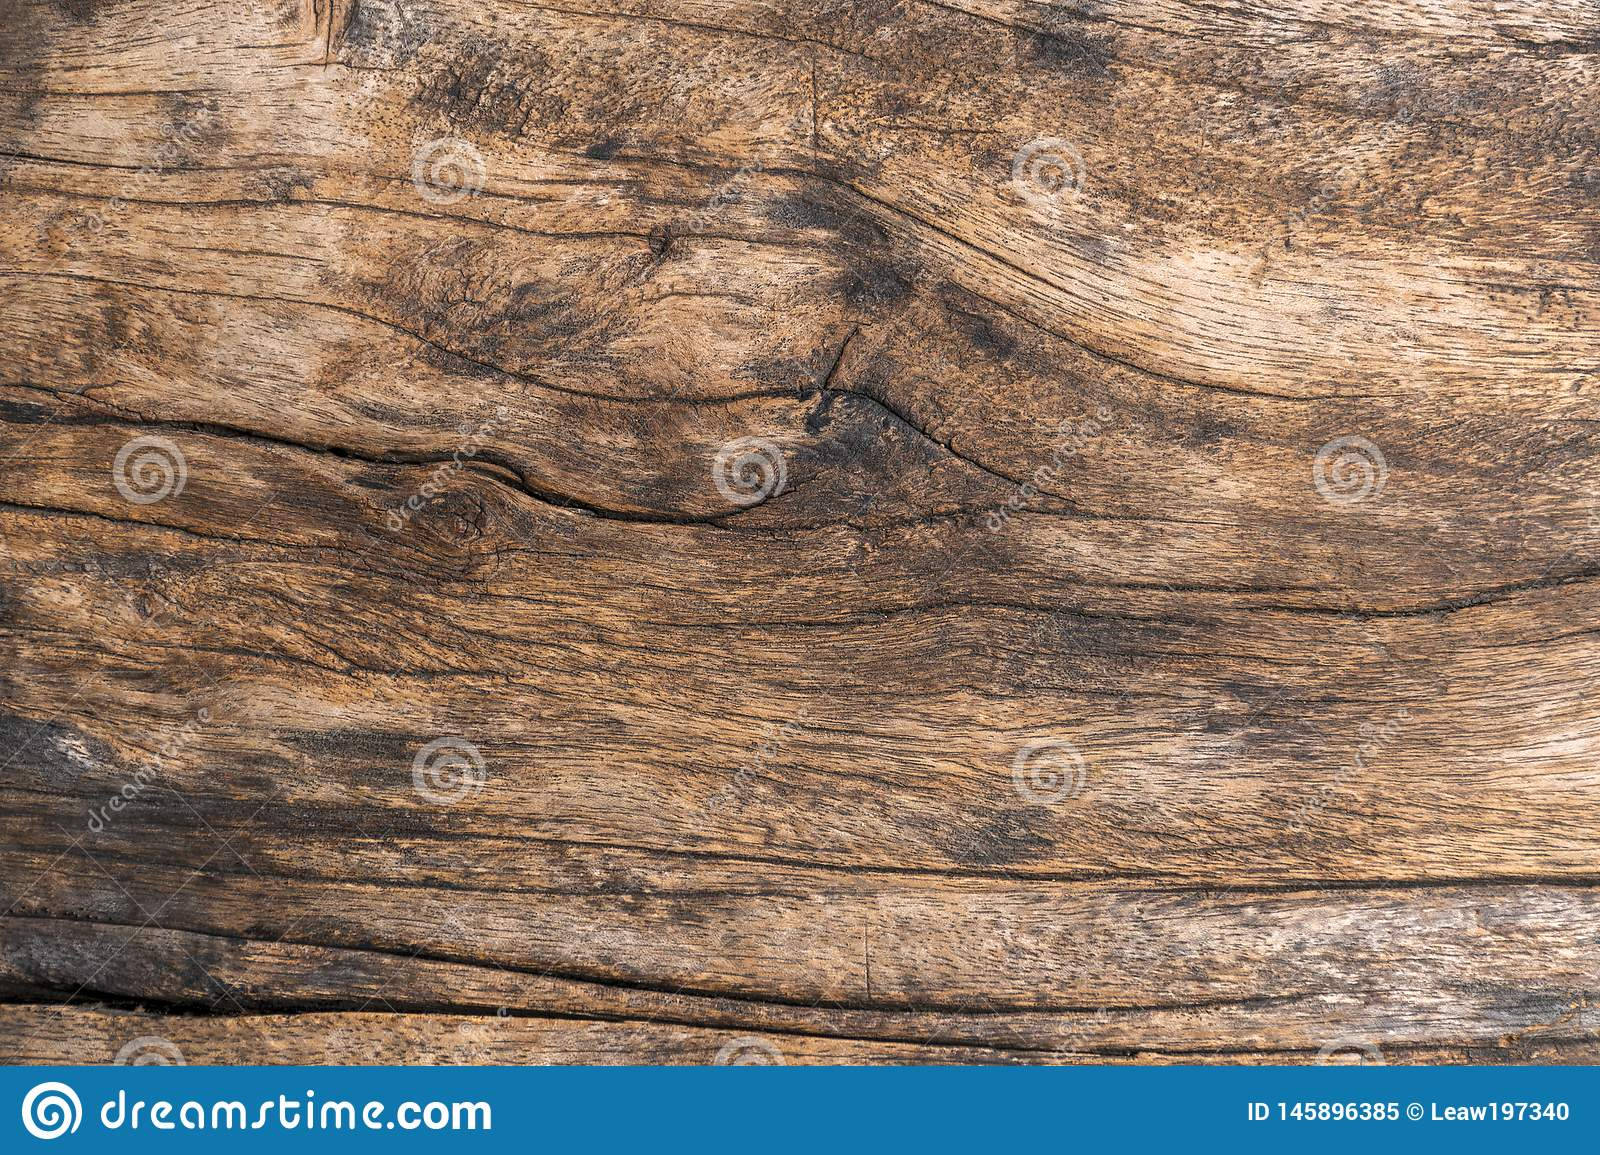 Closeup. Aged Solid Old Wood Slat Rustic Shabby Brown Background. Grunge Faded Wood Board Panel Structure. Hardwood Dark Weathered